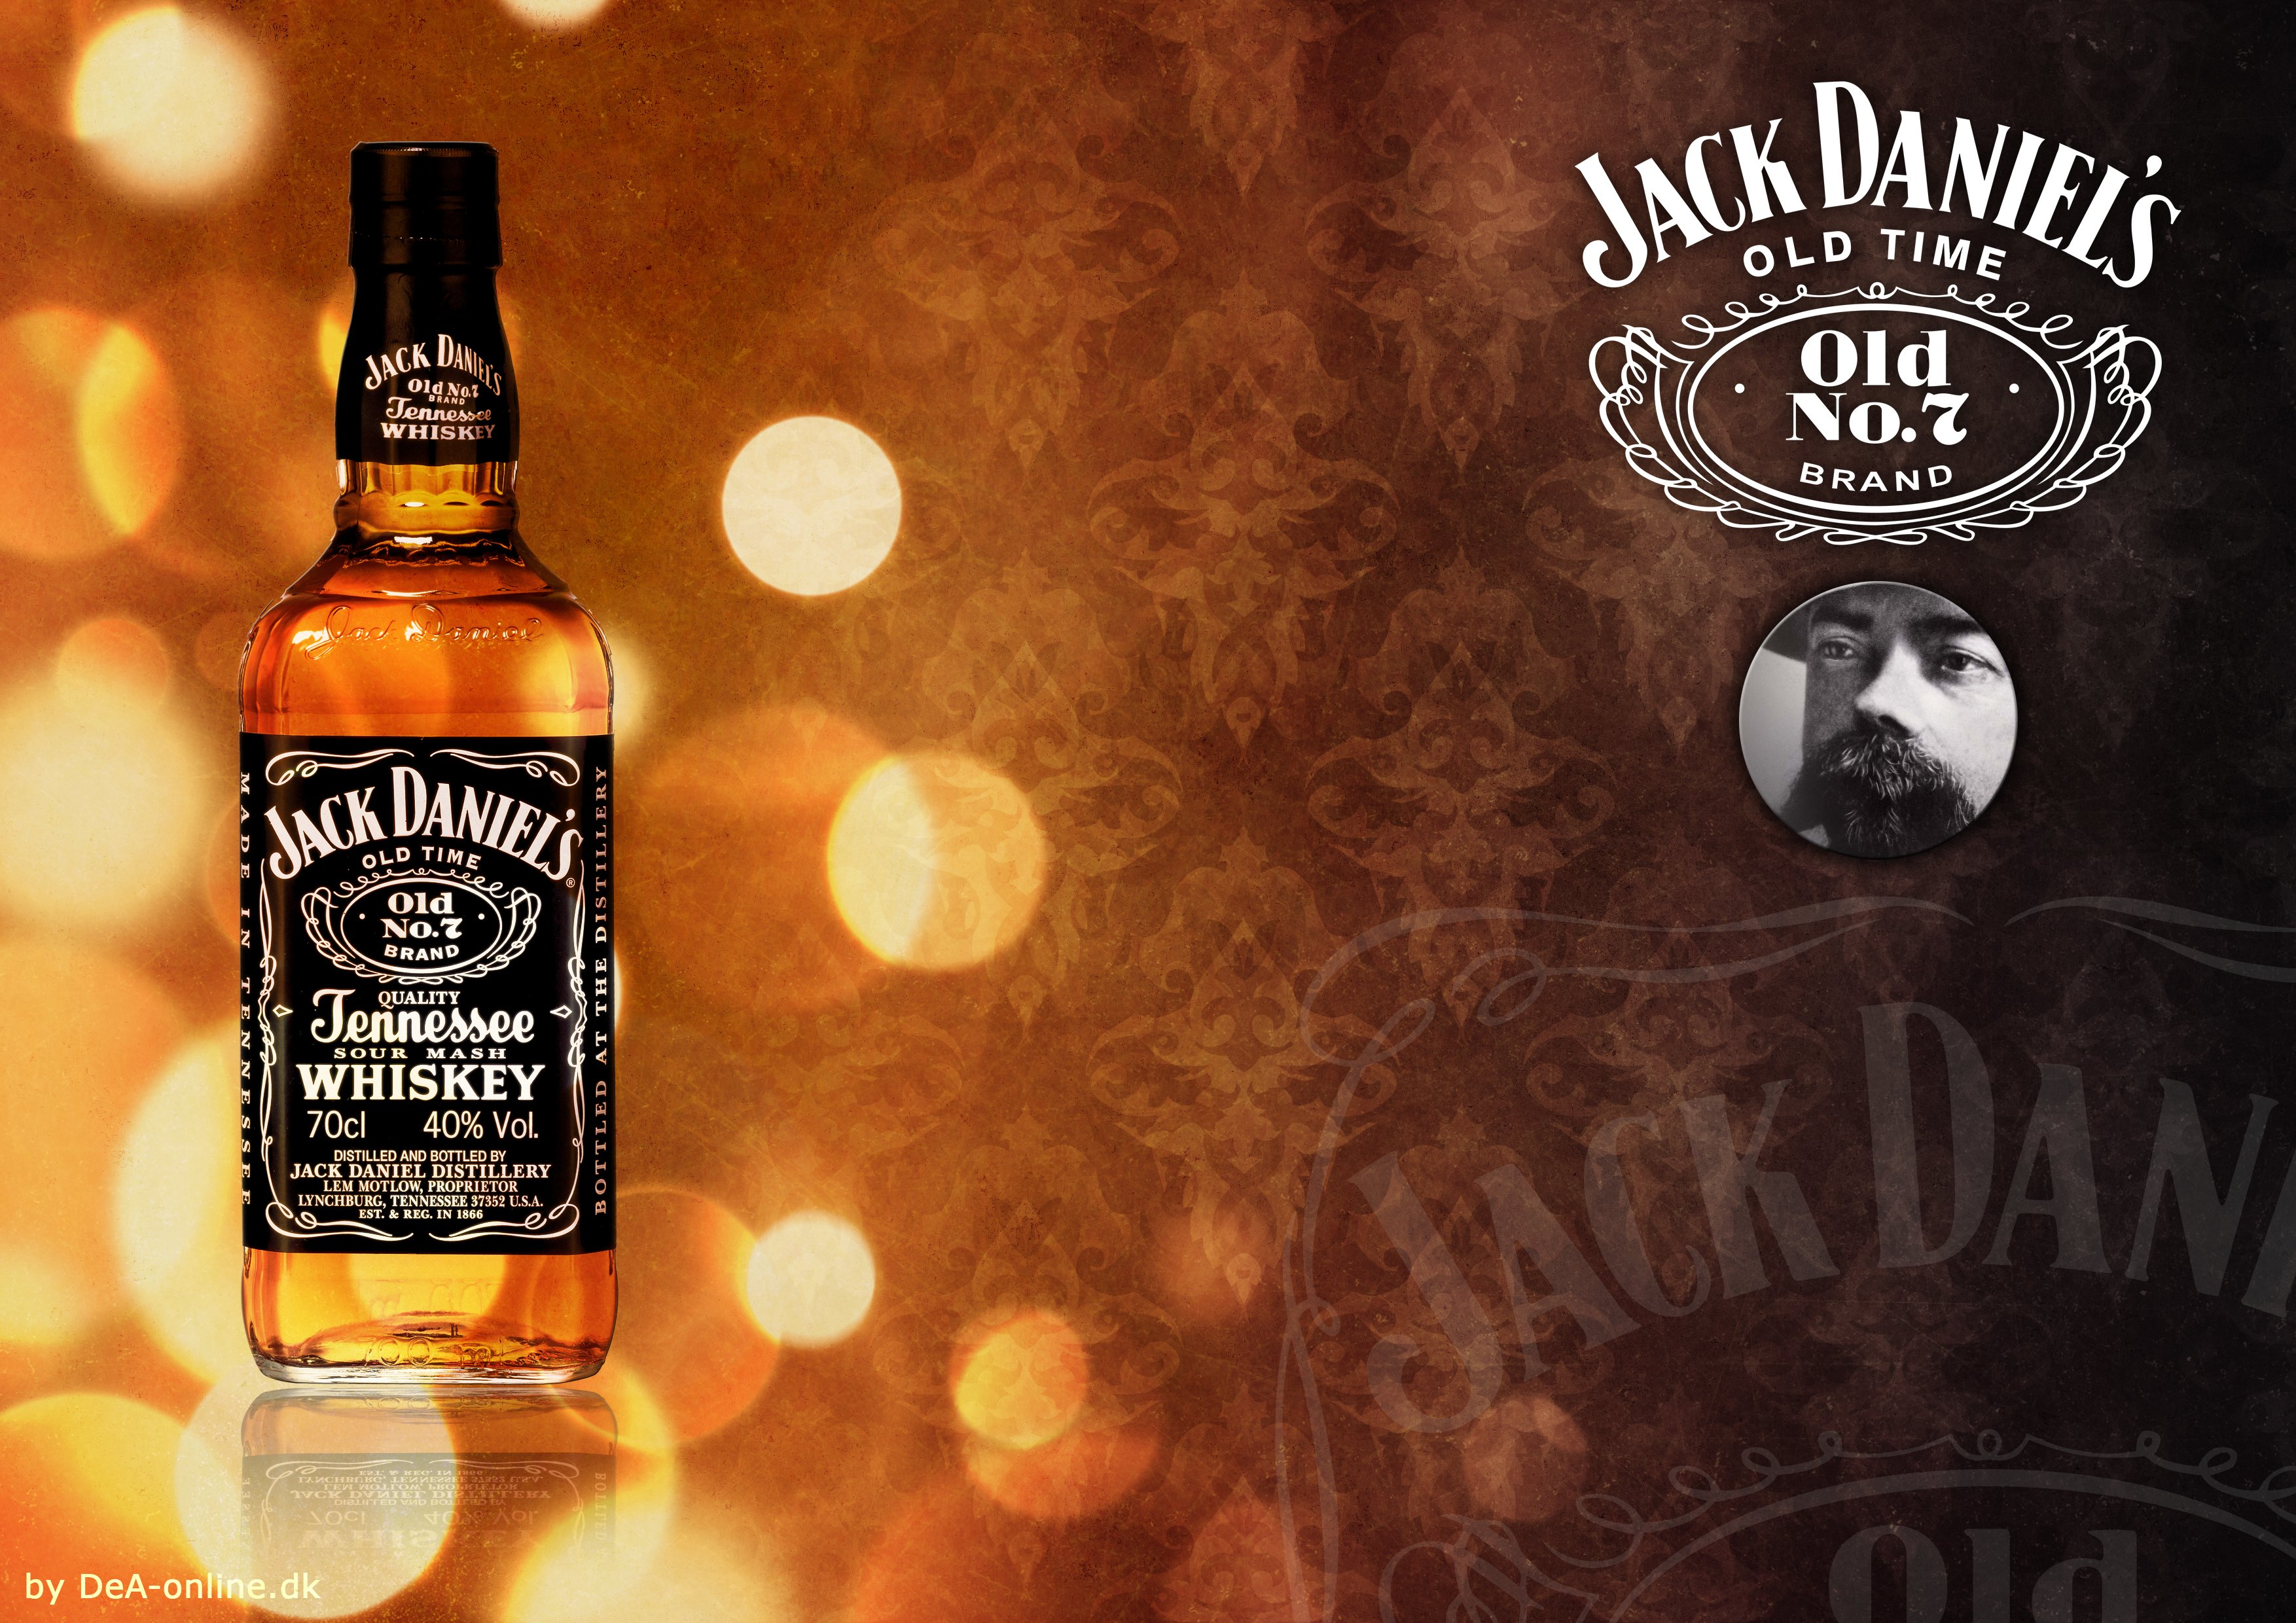 whisky 1080p wallpapers hd - photo #14